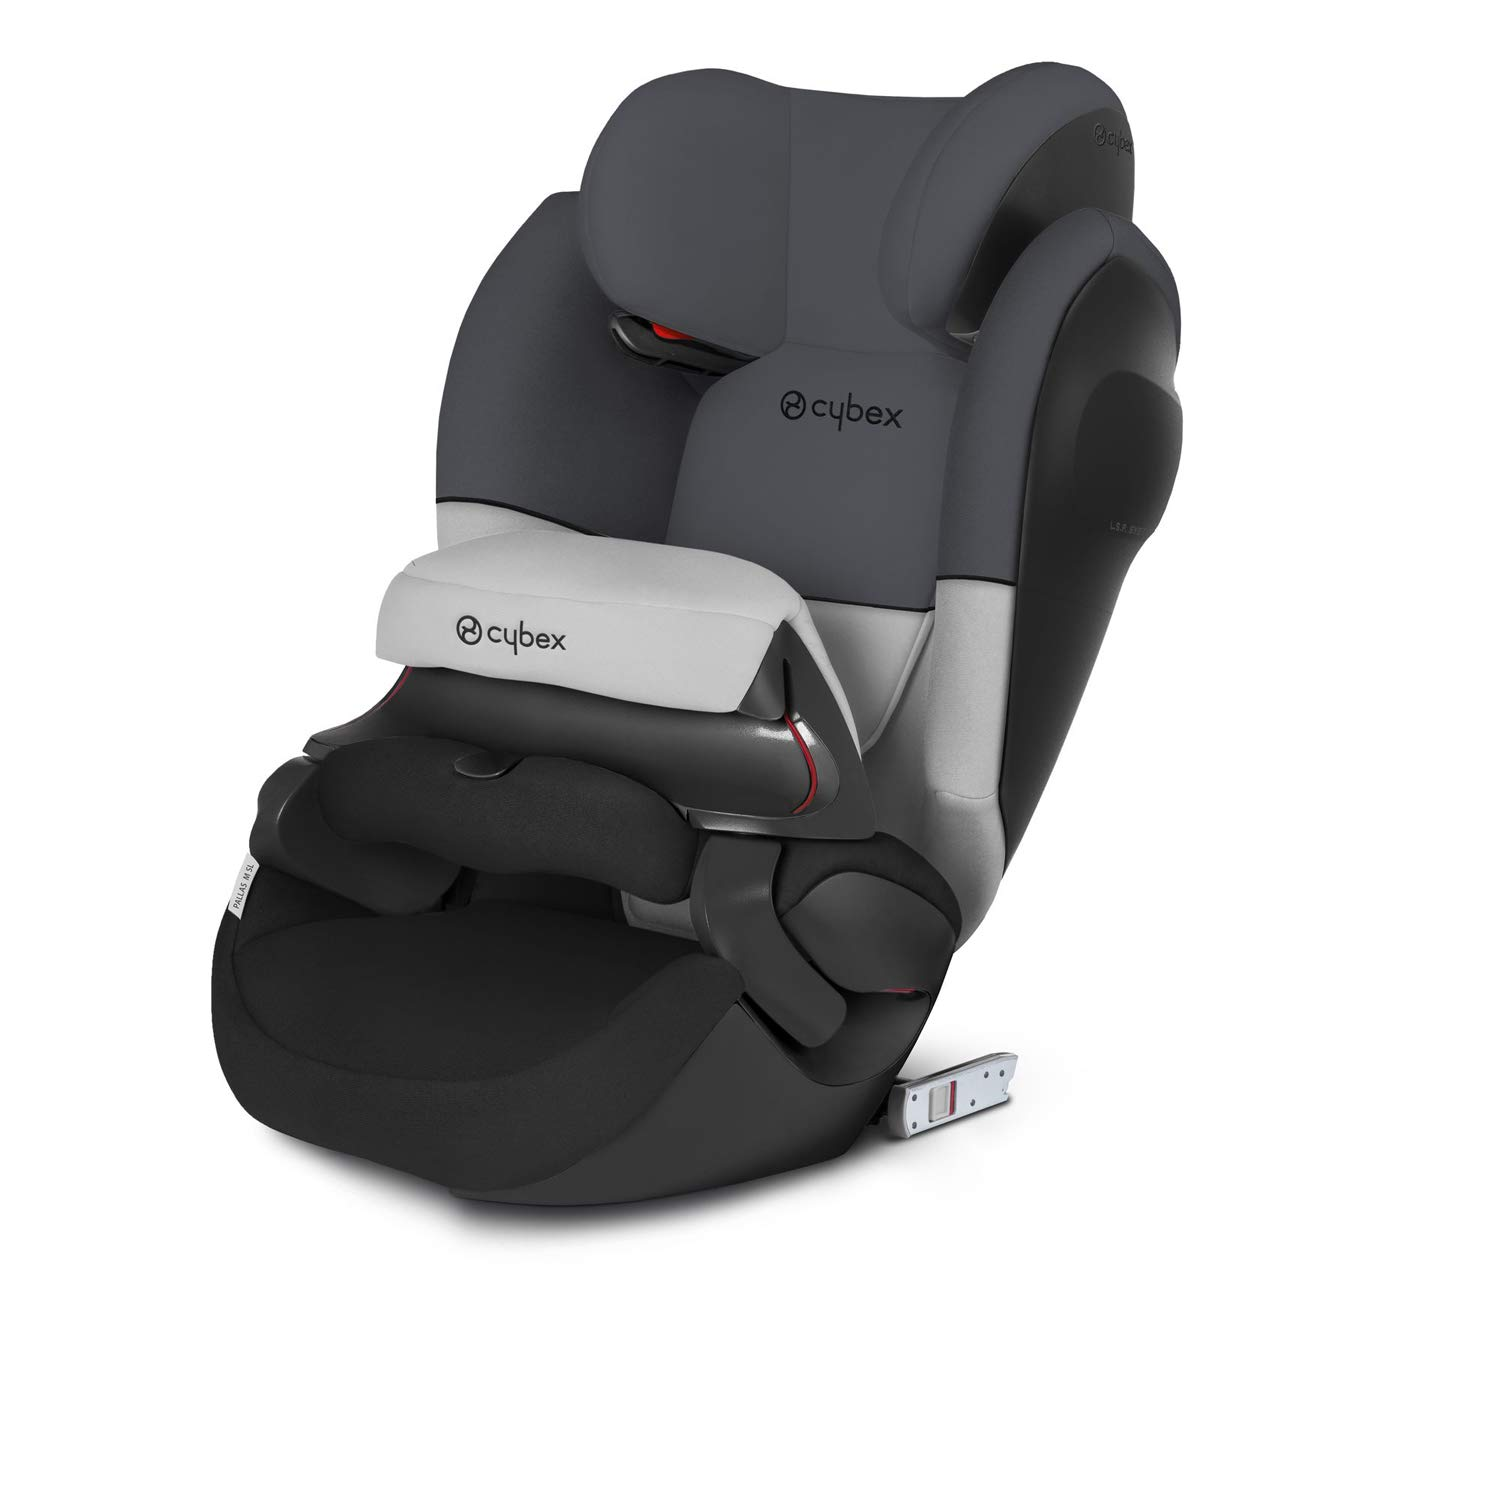 Cybex Silver Pallas M-Fix SL, 2-in-1 Child's Car Seat, High Back Booster, Adjustable Impact Safety Shield and ISOFIX Compatible, Group 1/2/3 (9-36 kg), From Approx 9 Months - 12 Years, Gray Rabbit